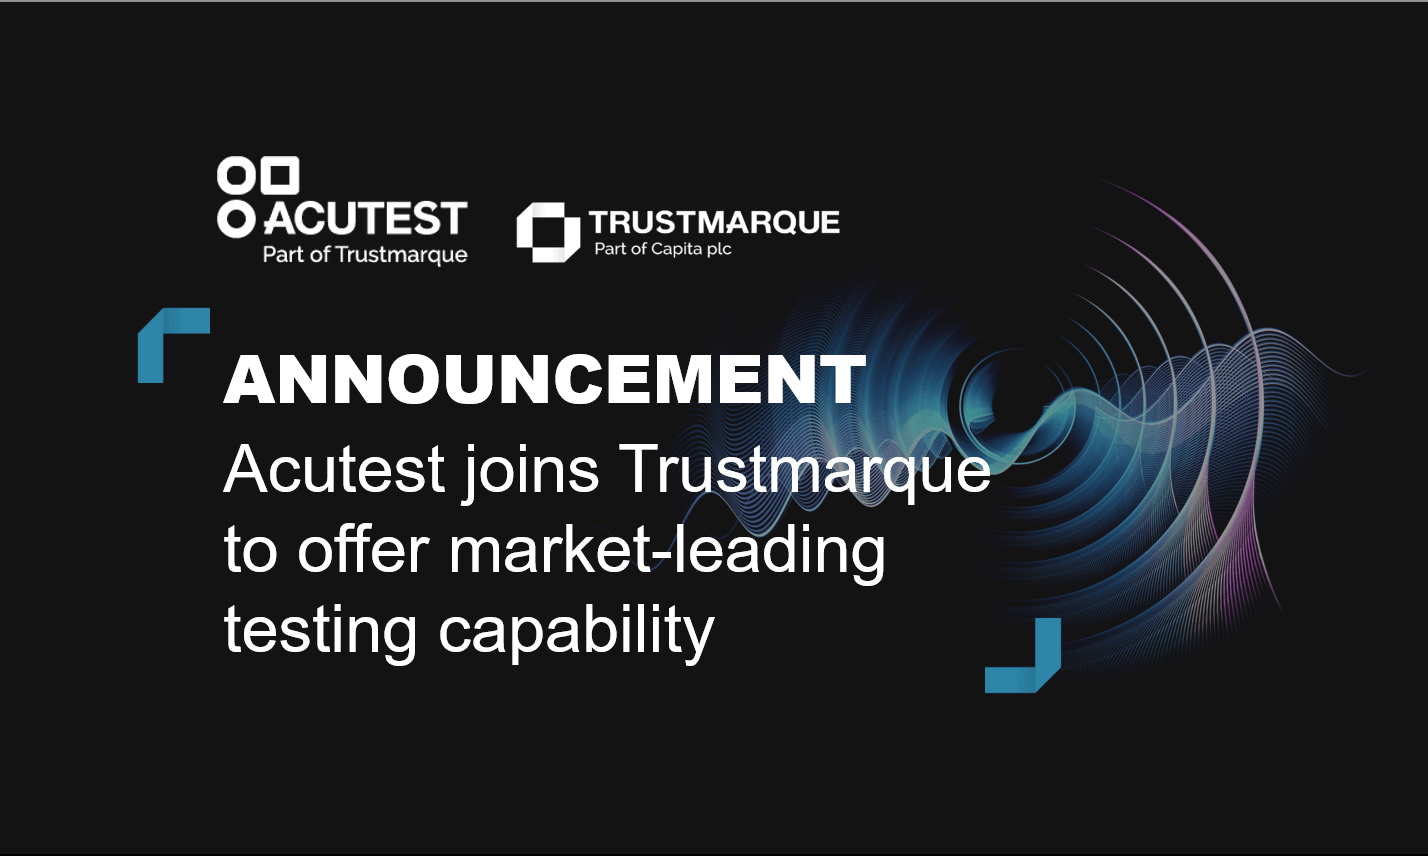 Acutest joins Trustmarque blog